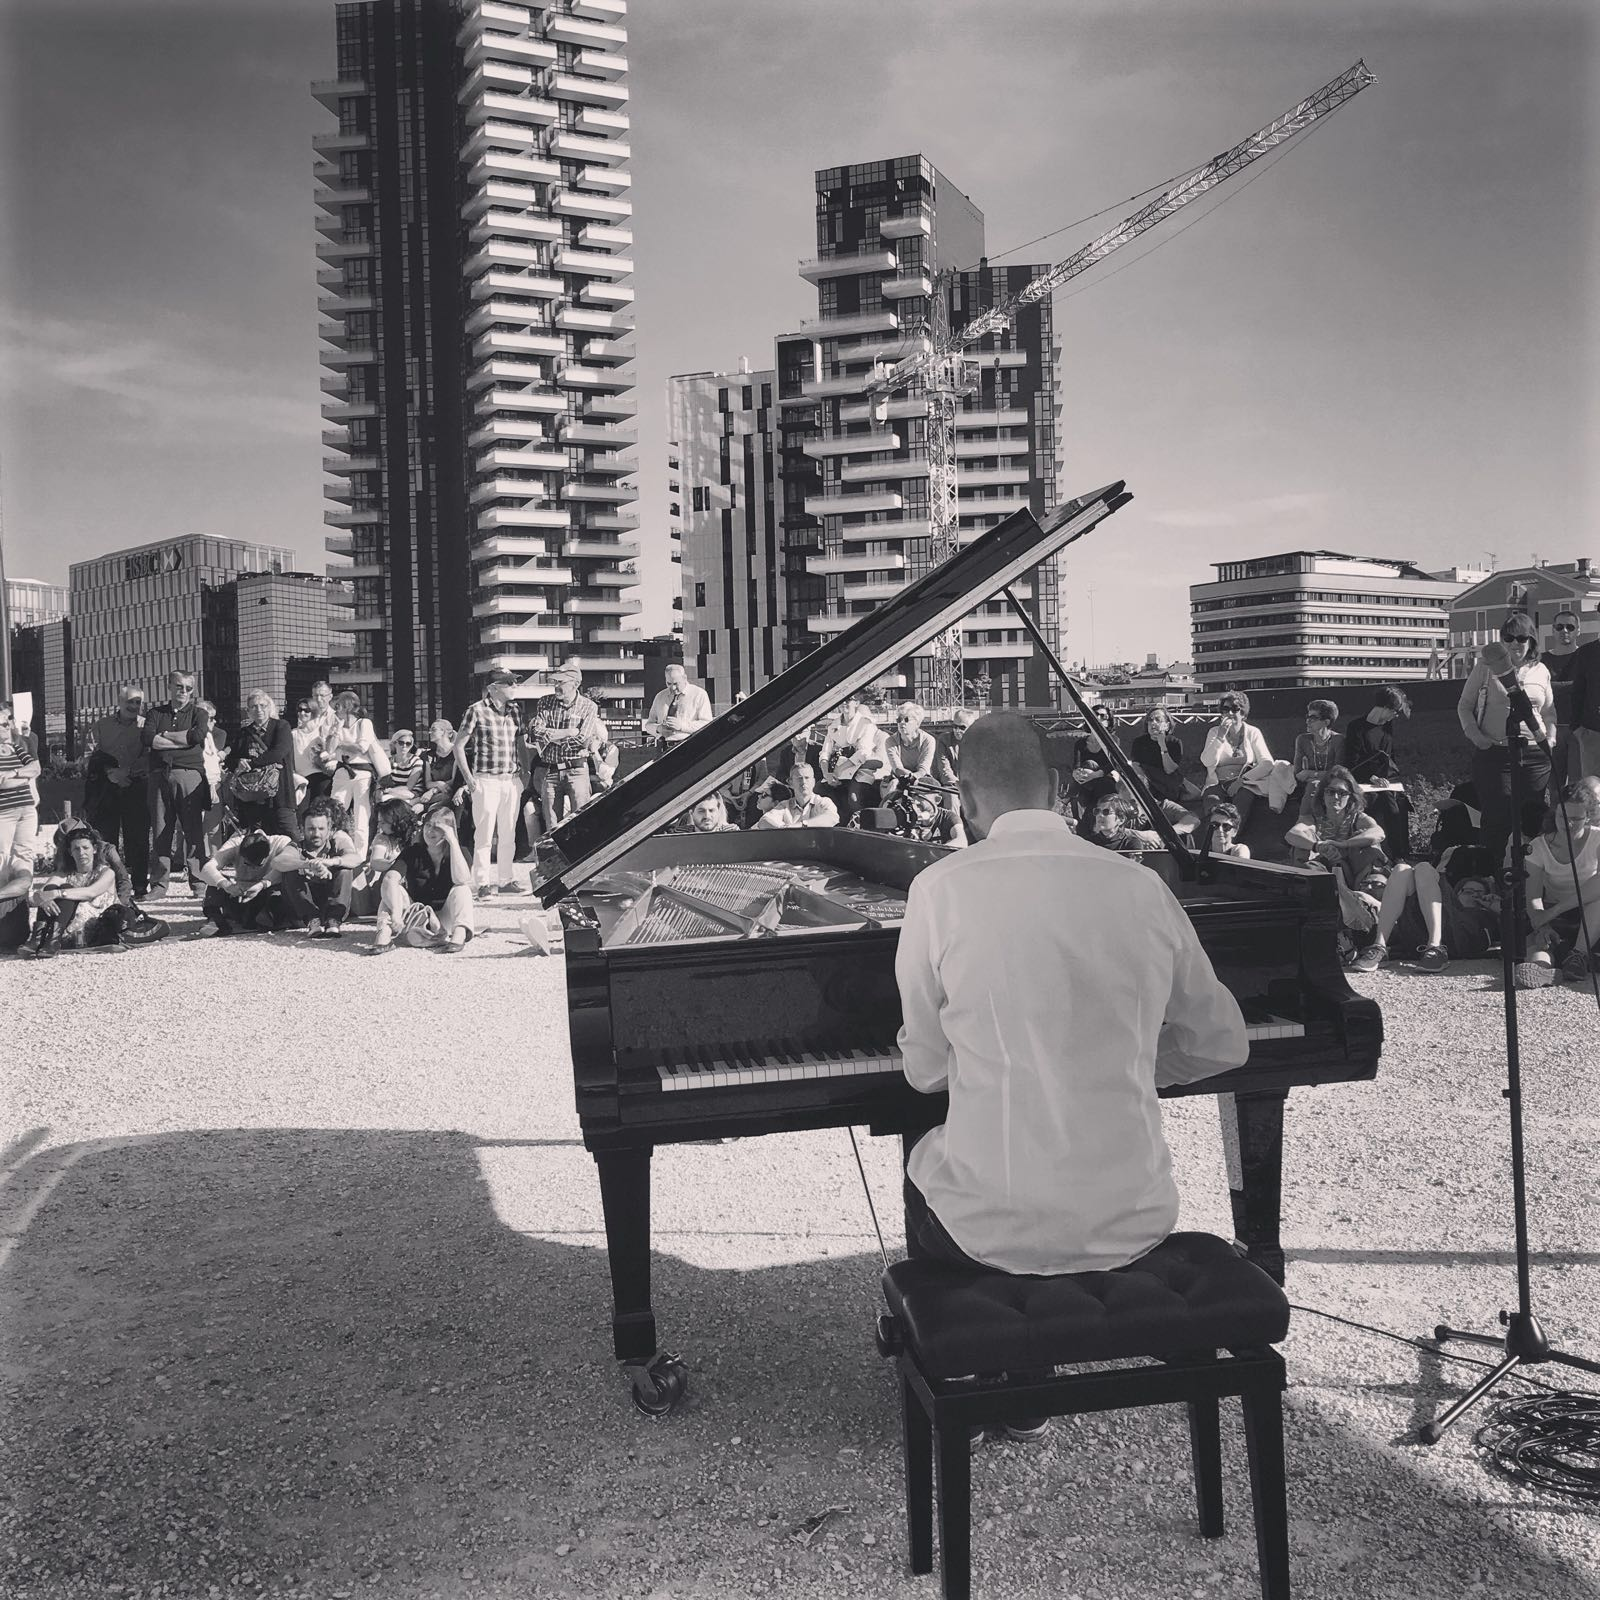 https://www.dotmug.net/wp-content/uploads/2016/05/piano_city_milano.jpg